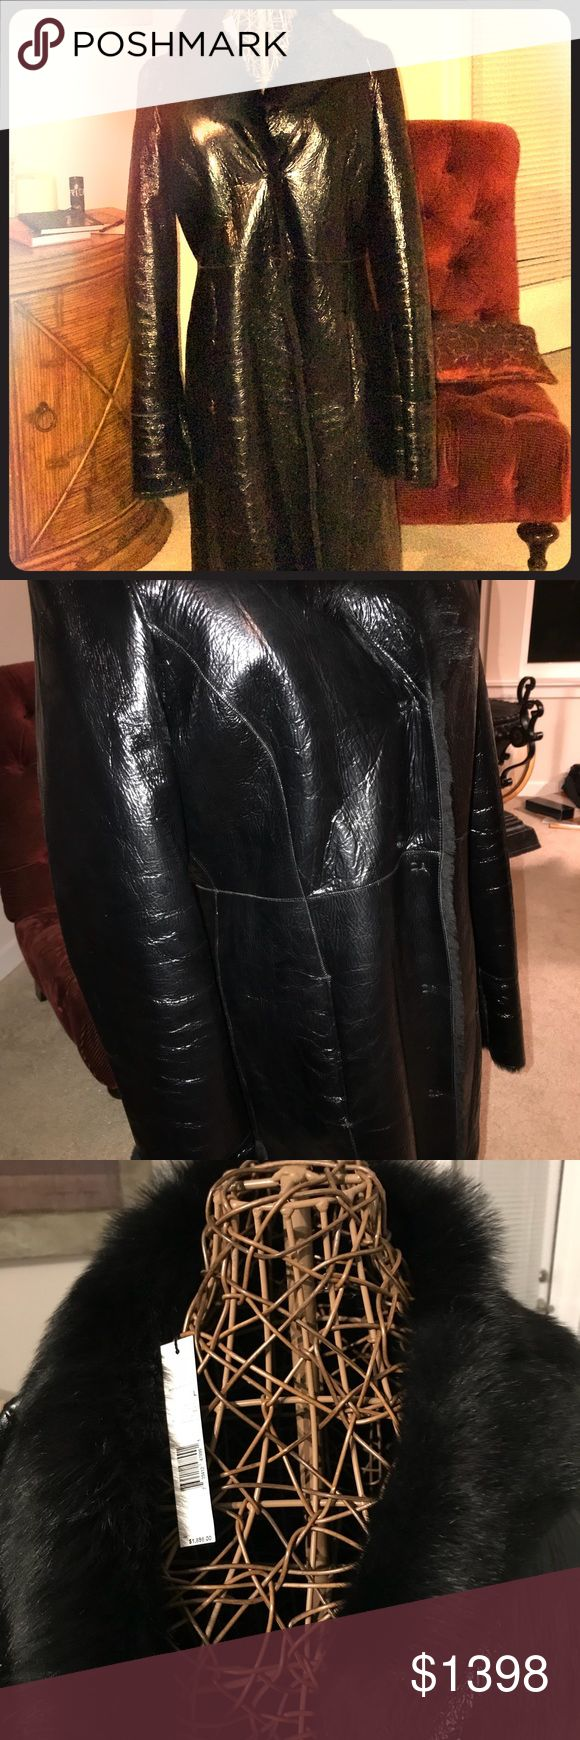 """Full length Elie Tahari black Shearling coat NWT Elie Tahari Beautiful Black Shearling leather full length """"Helen""""coat. NWT. Size L. NOT generously cut. It fits size 8 with ample arm wiggle. Size 10 comfortably without being tight.  If you have thicker arms you may find it uncomfortable. I doubt it will fit size 12 or above. The coat is warm—shearling. Flawless. Retails $1898 Elie Tahari Jackets & Coats Trench Coats"""